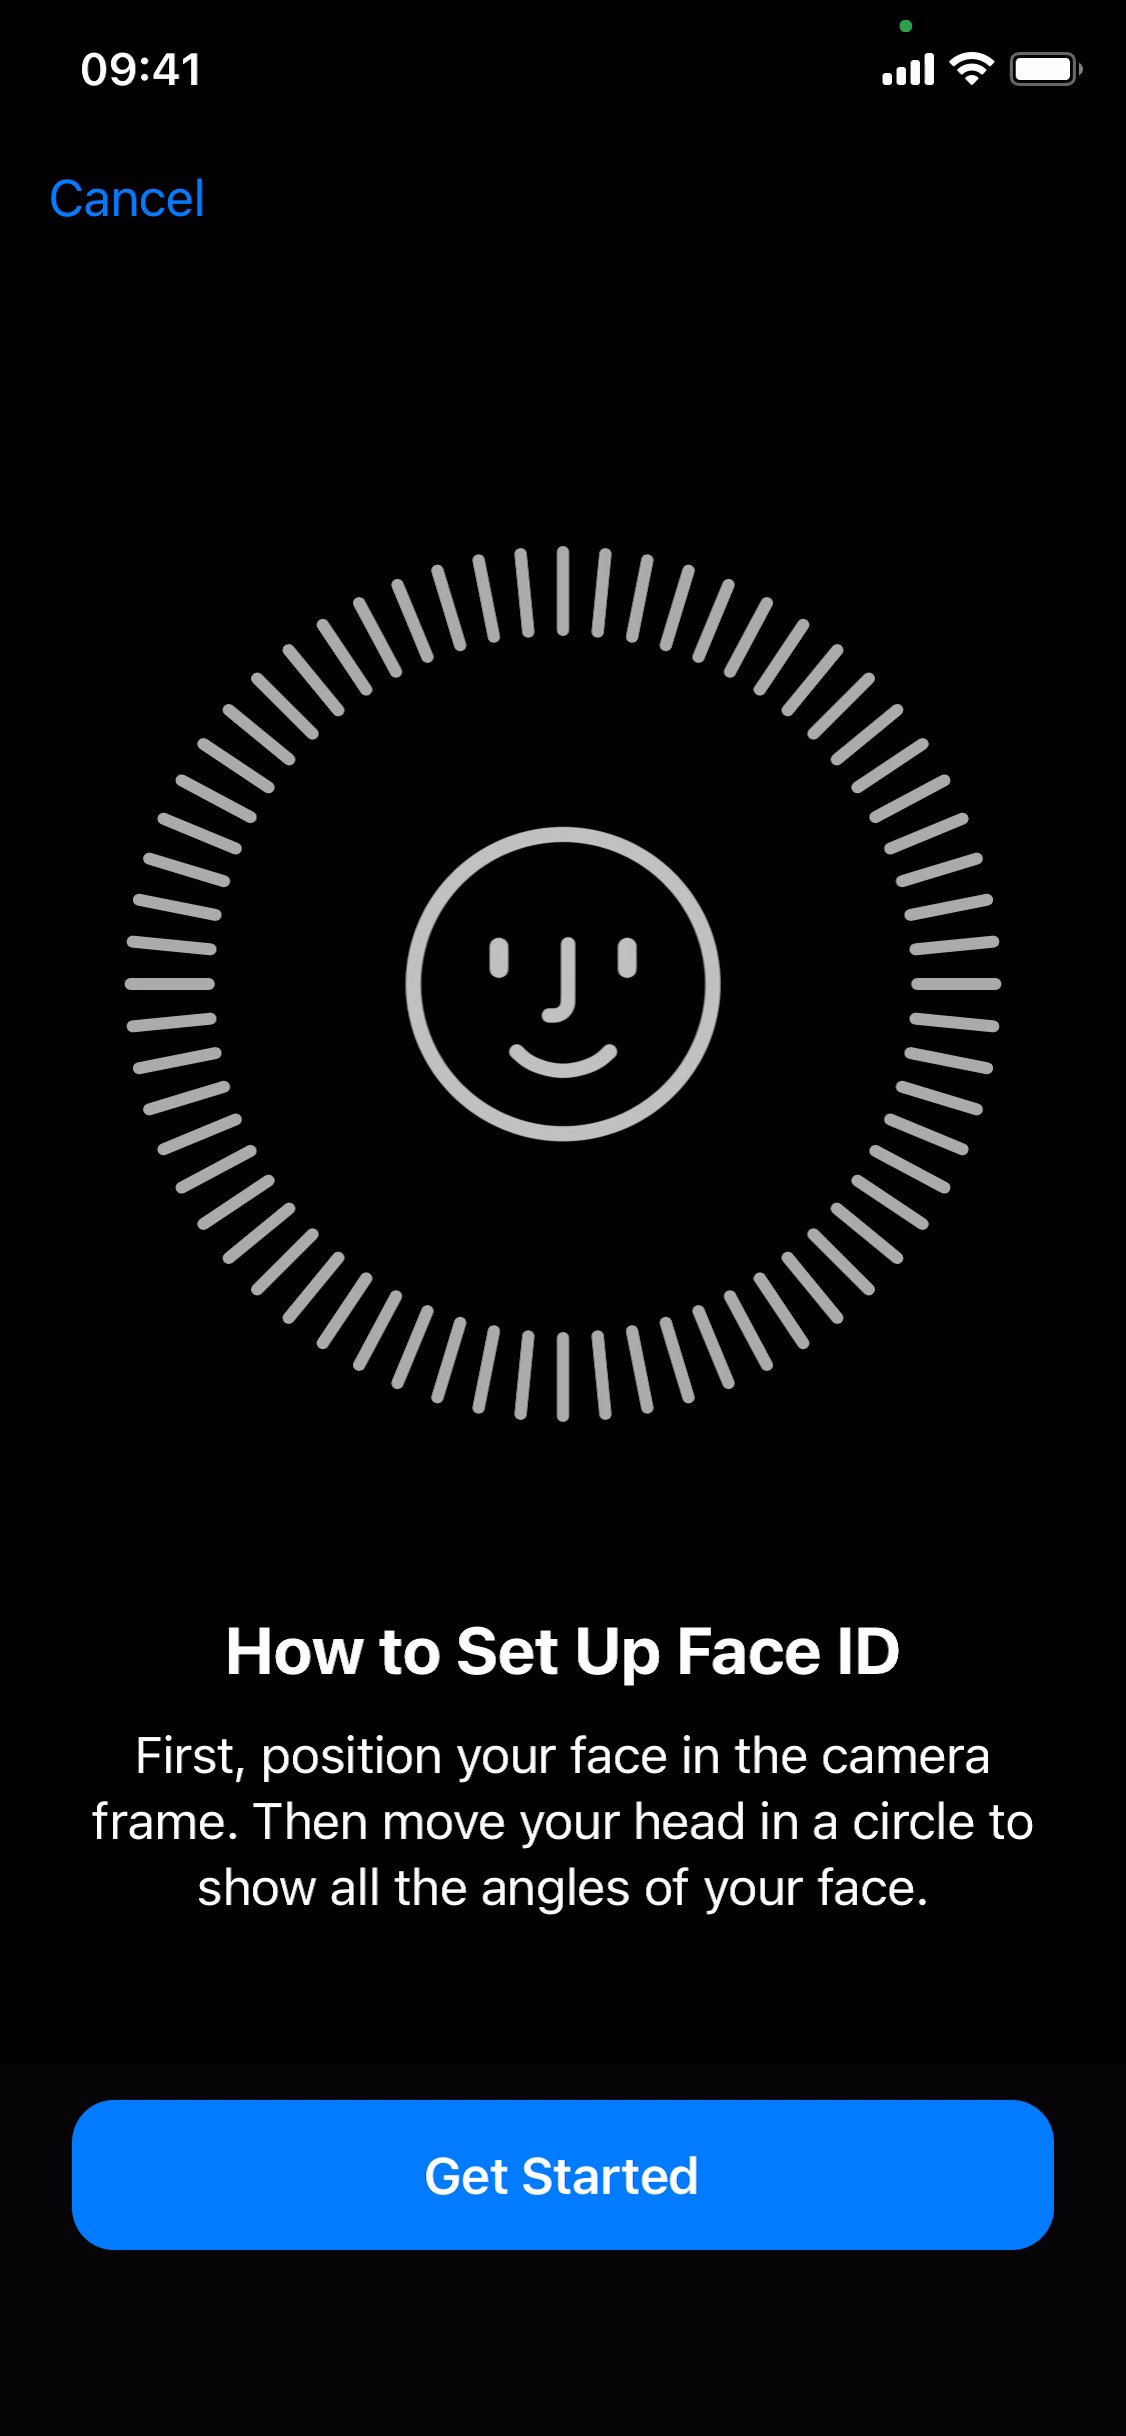 How to setup Face ID screenshot